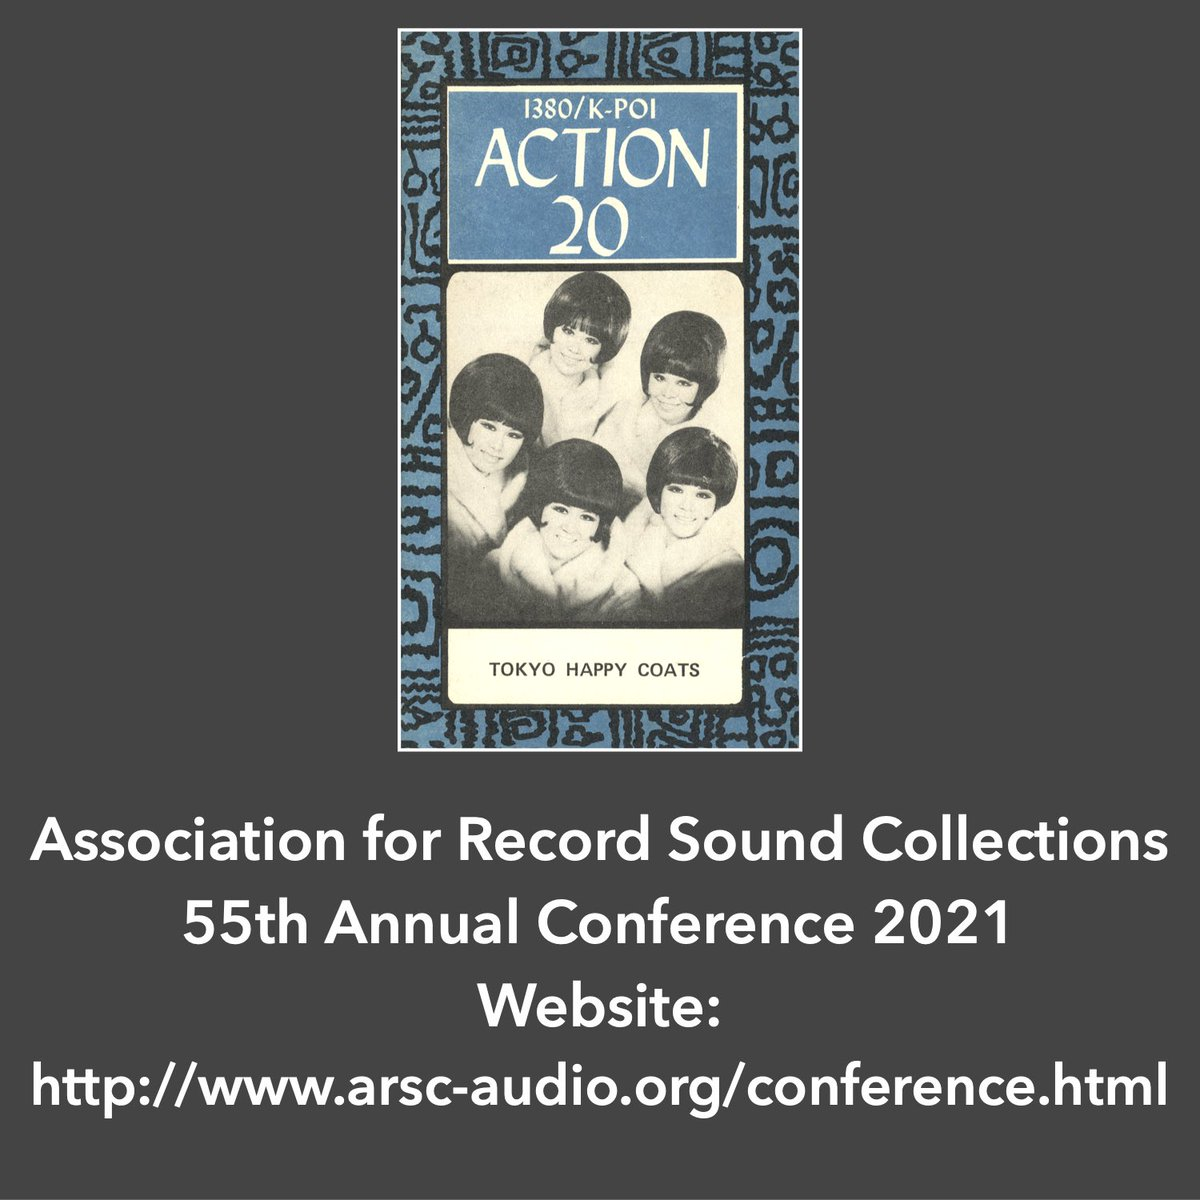 For more information about ARSC and the conference, go to https://t.co/7mEPMWCQuK. 👘🎸👘🎤👘🥁👘🎷👘🎹 https://t.co/dFbqkpN4nU